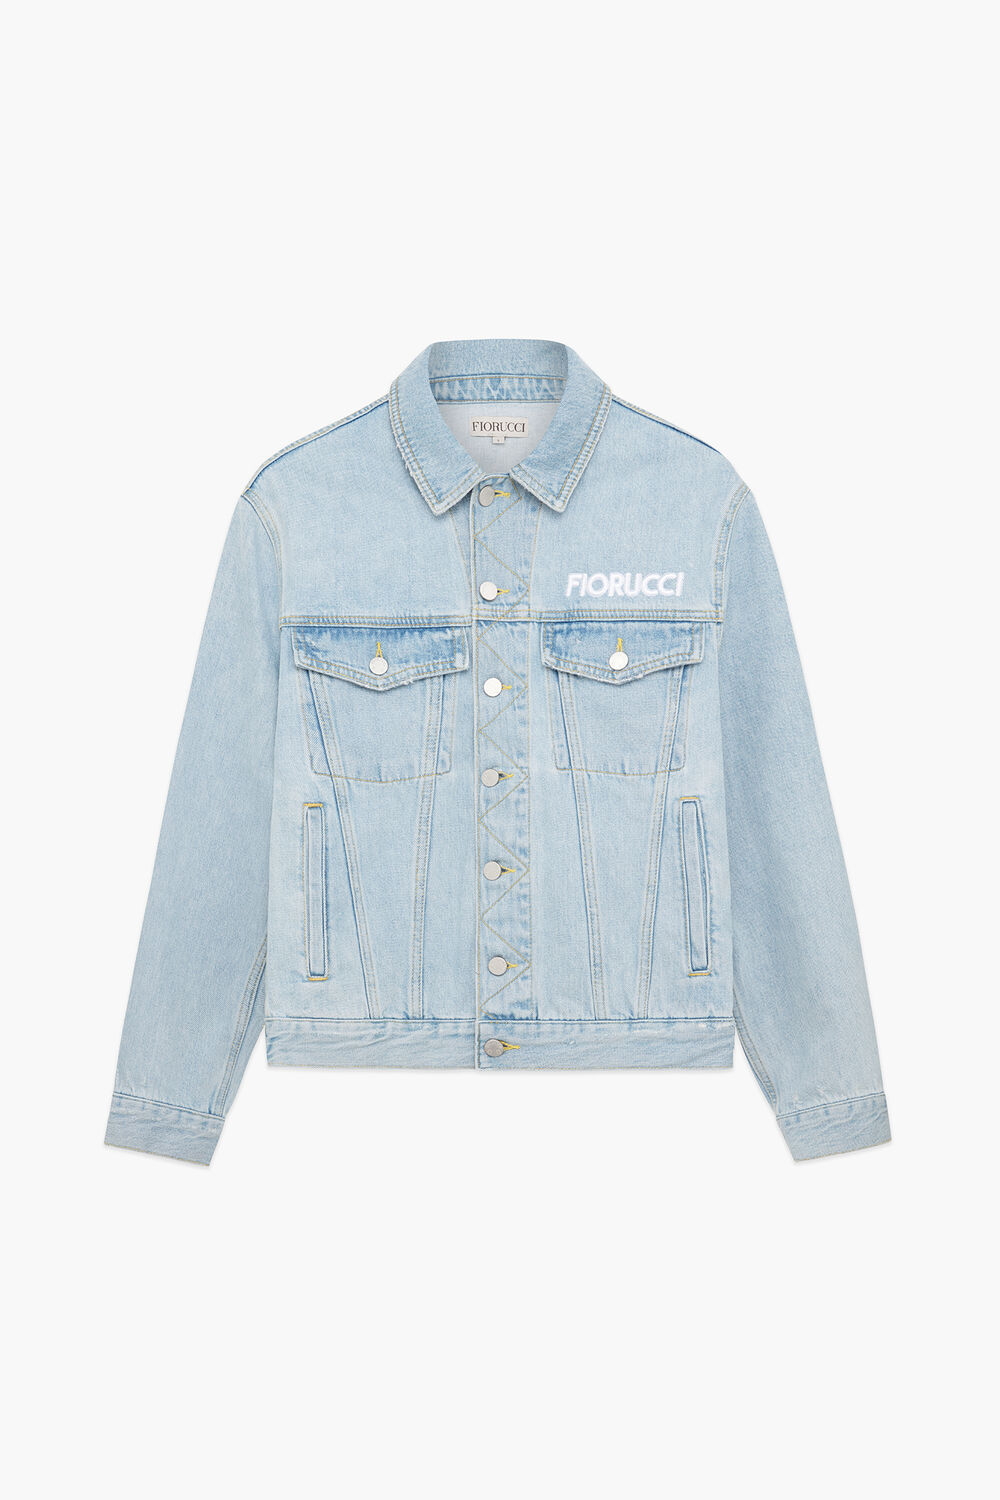 Martini Nico Denim Jacket Light Vintage